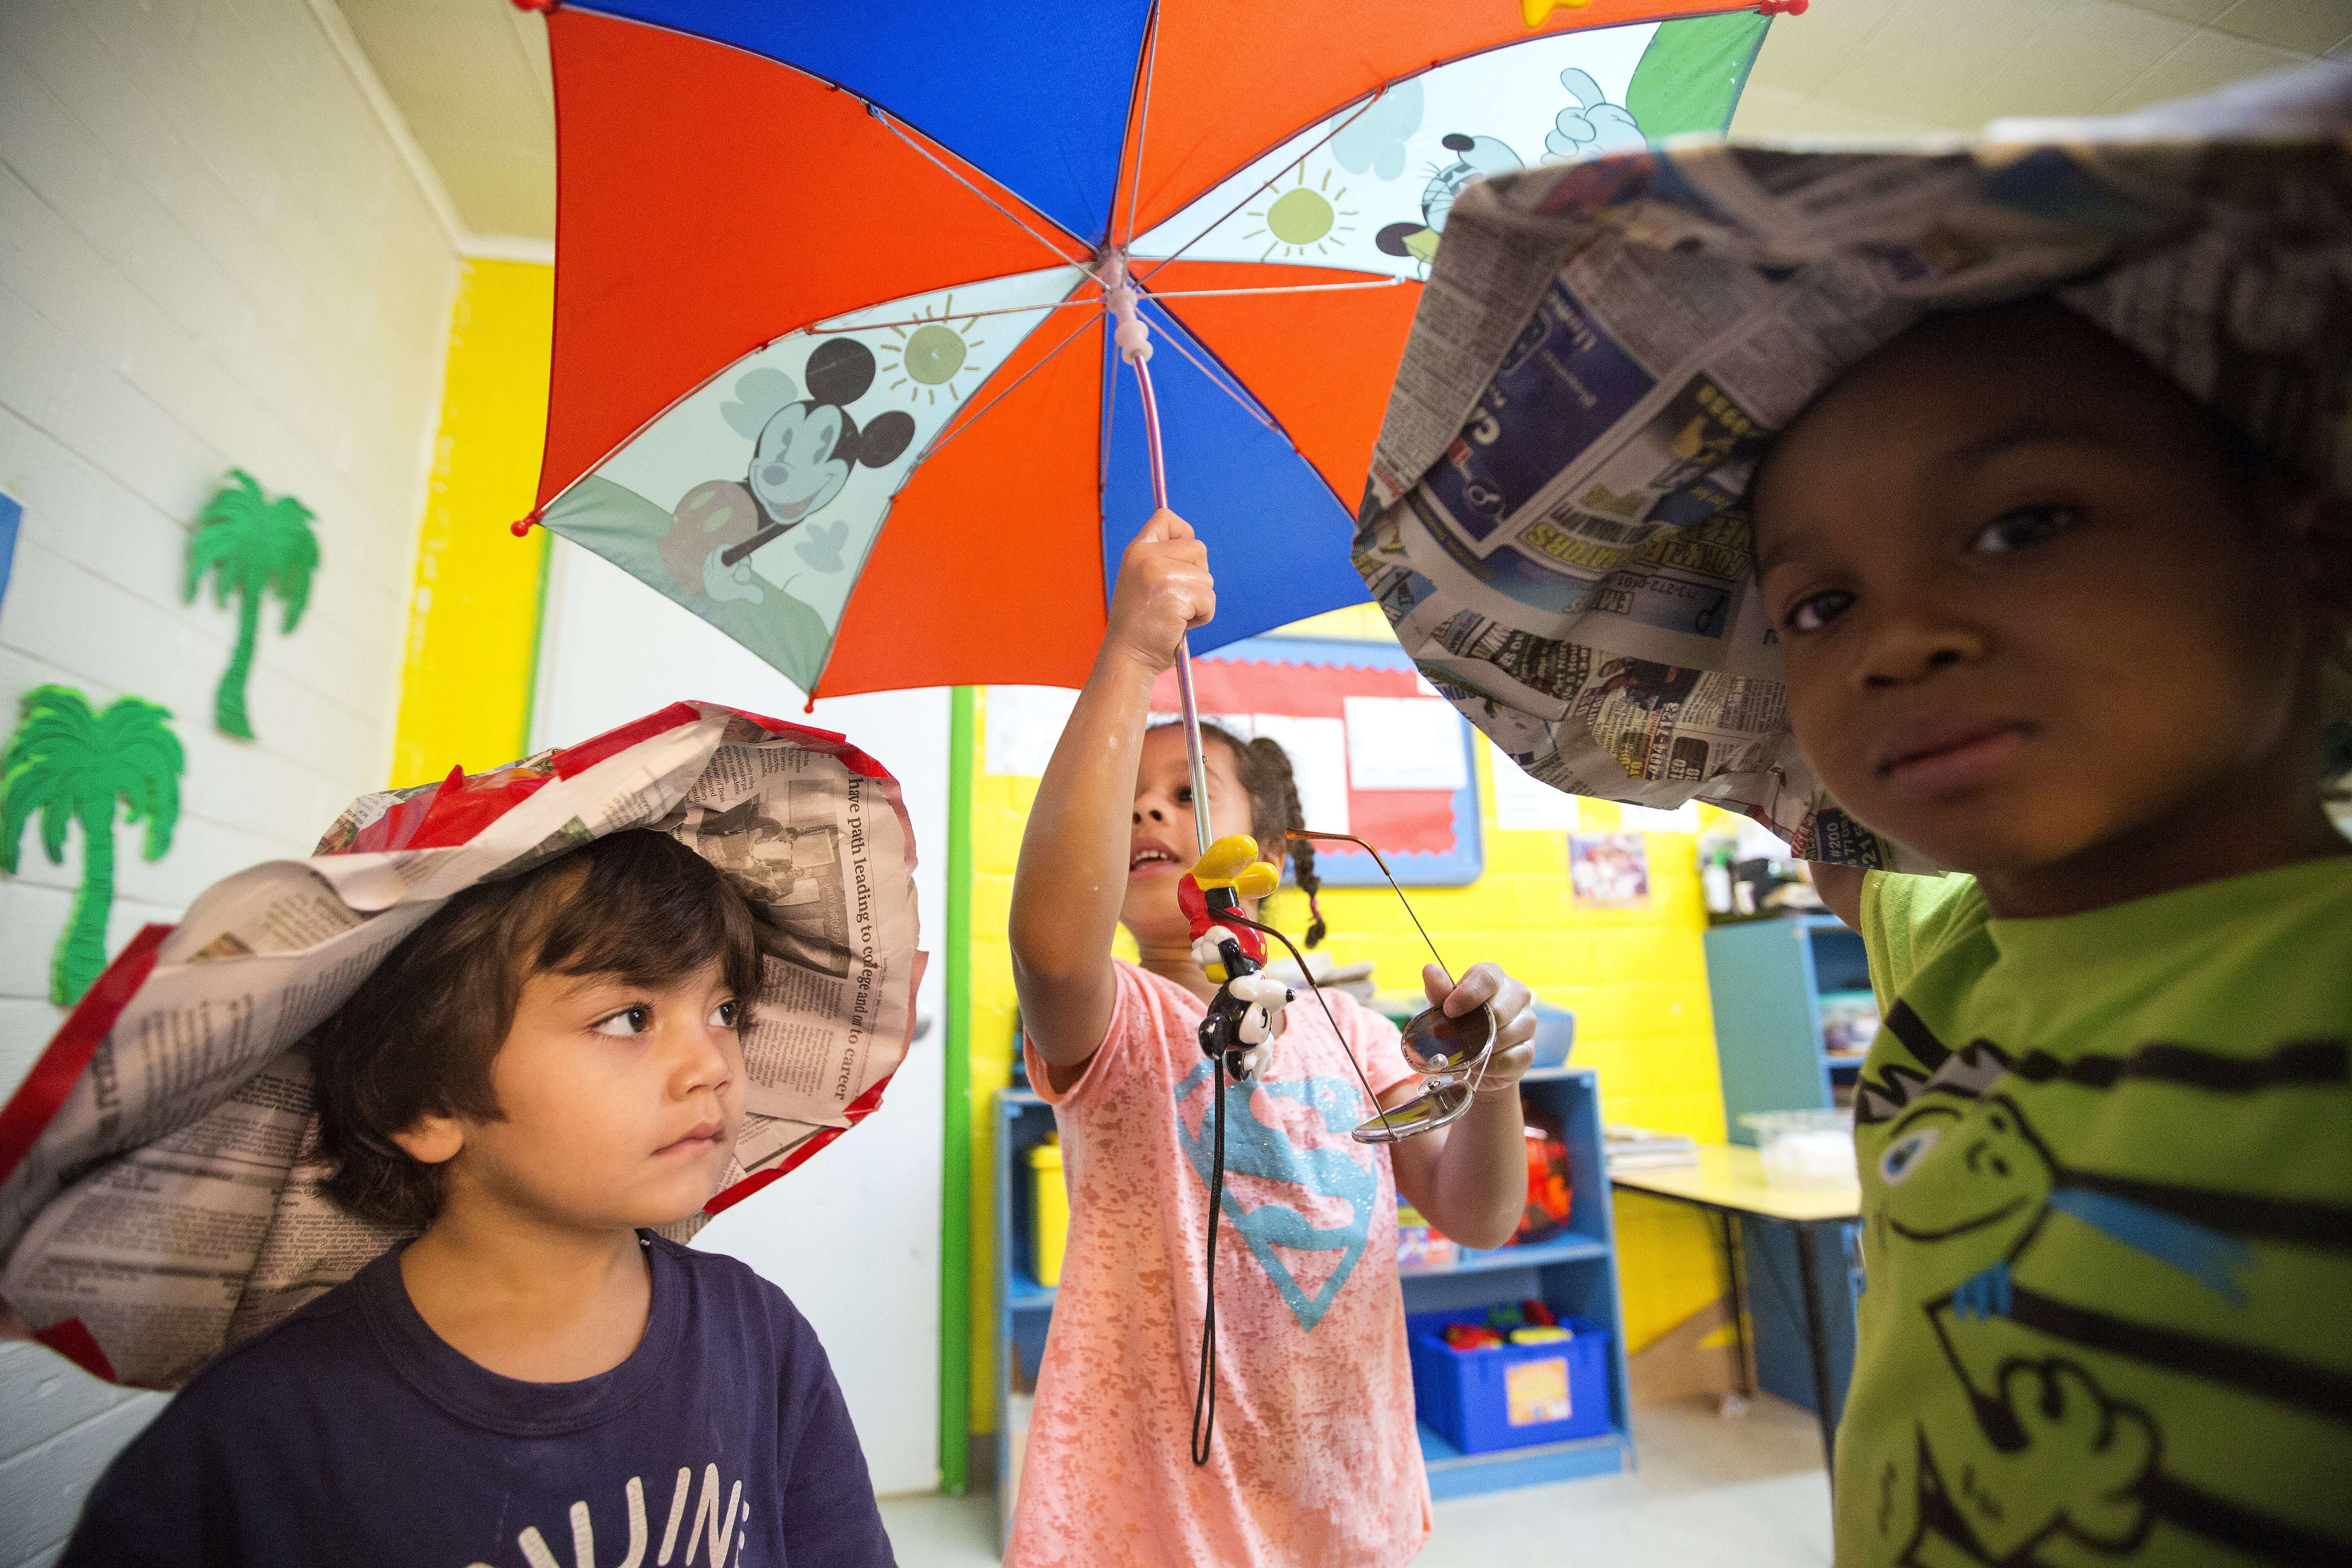 Umbrellas offer good protection from the sun, and they're part of the Ray and the Sunbeatables curriculum.